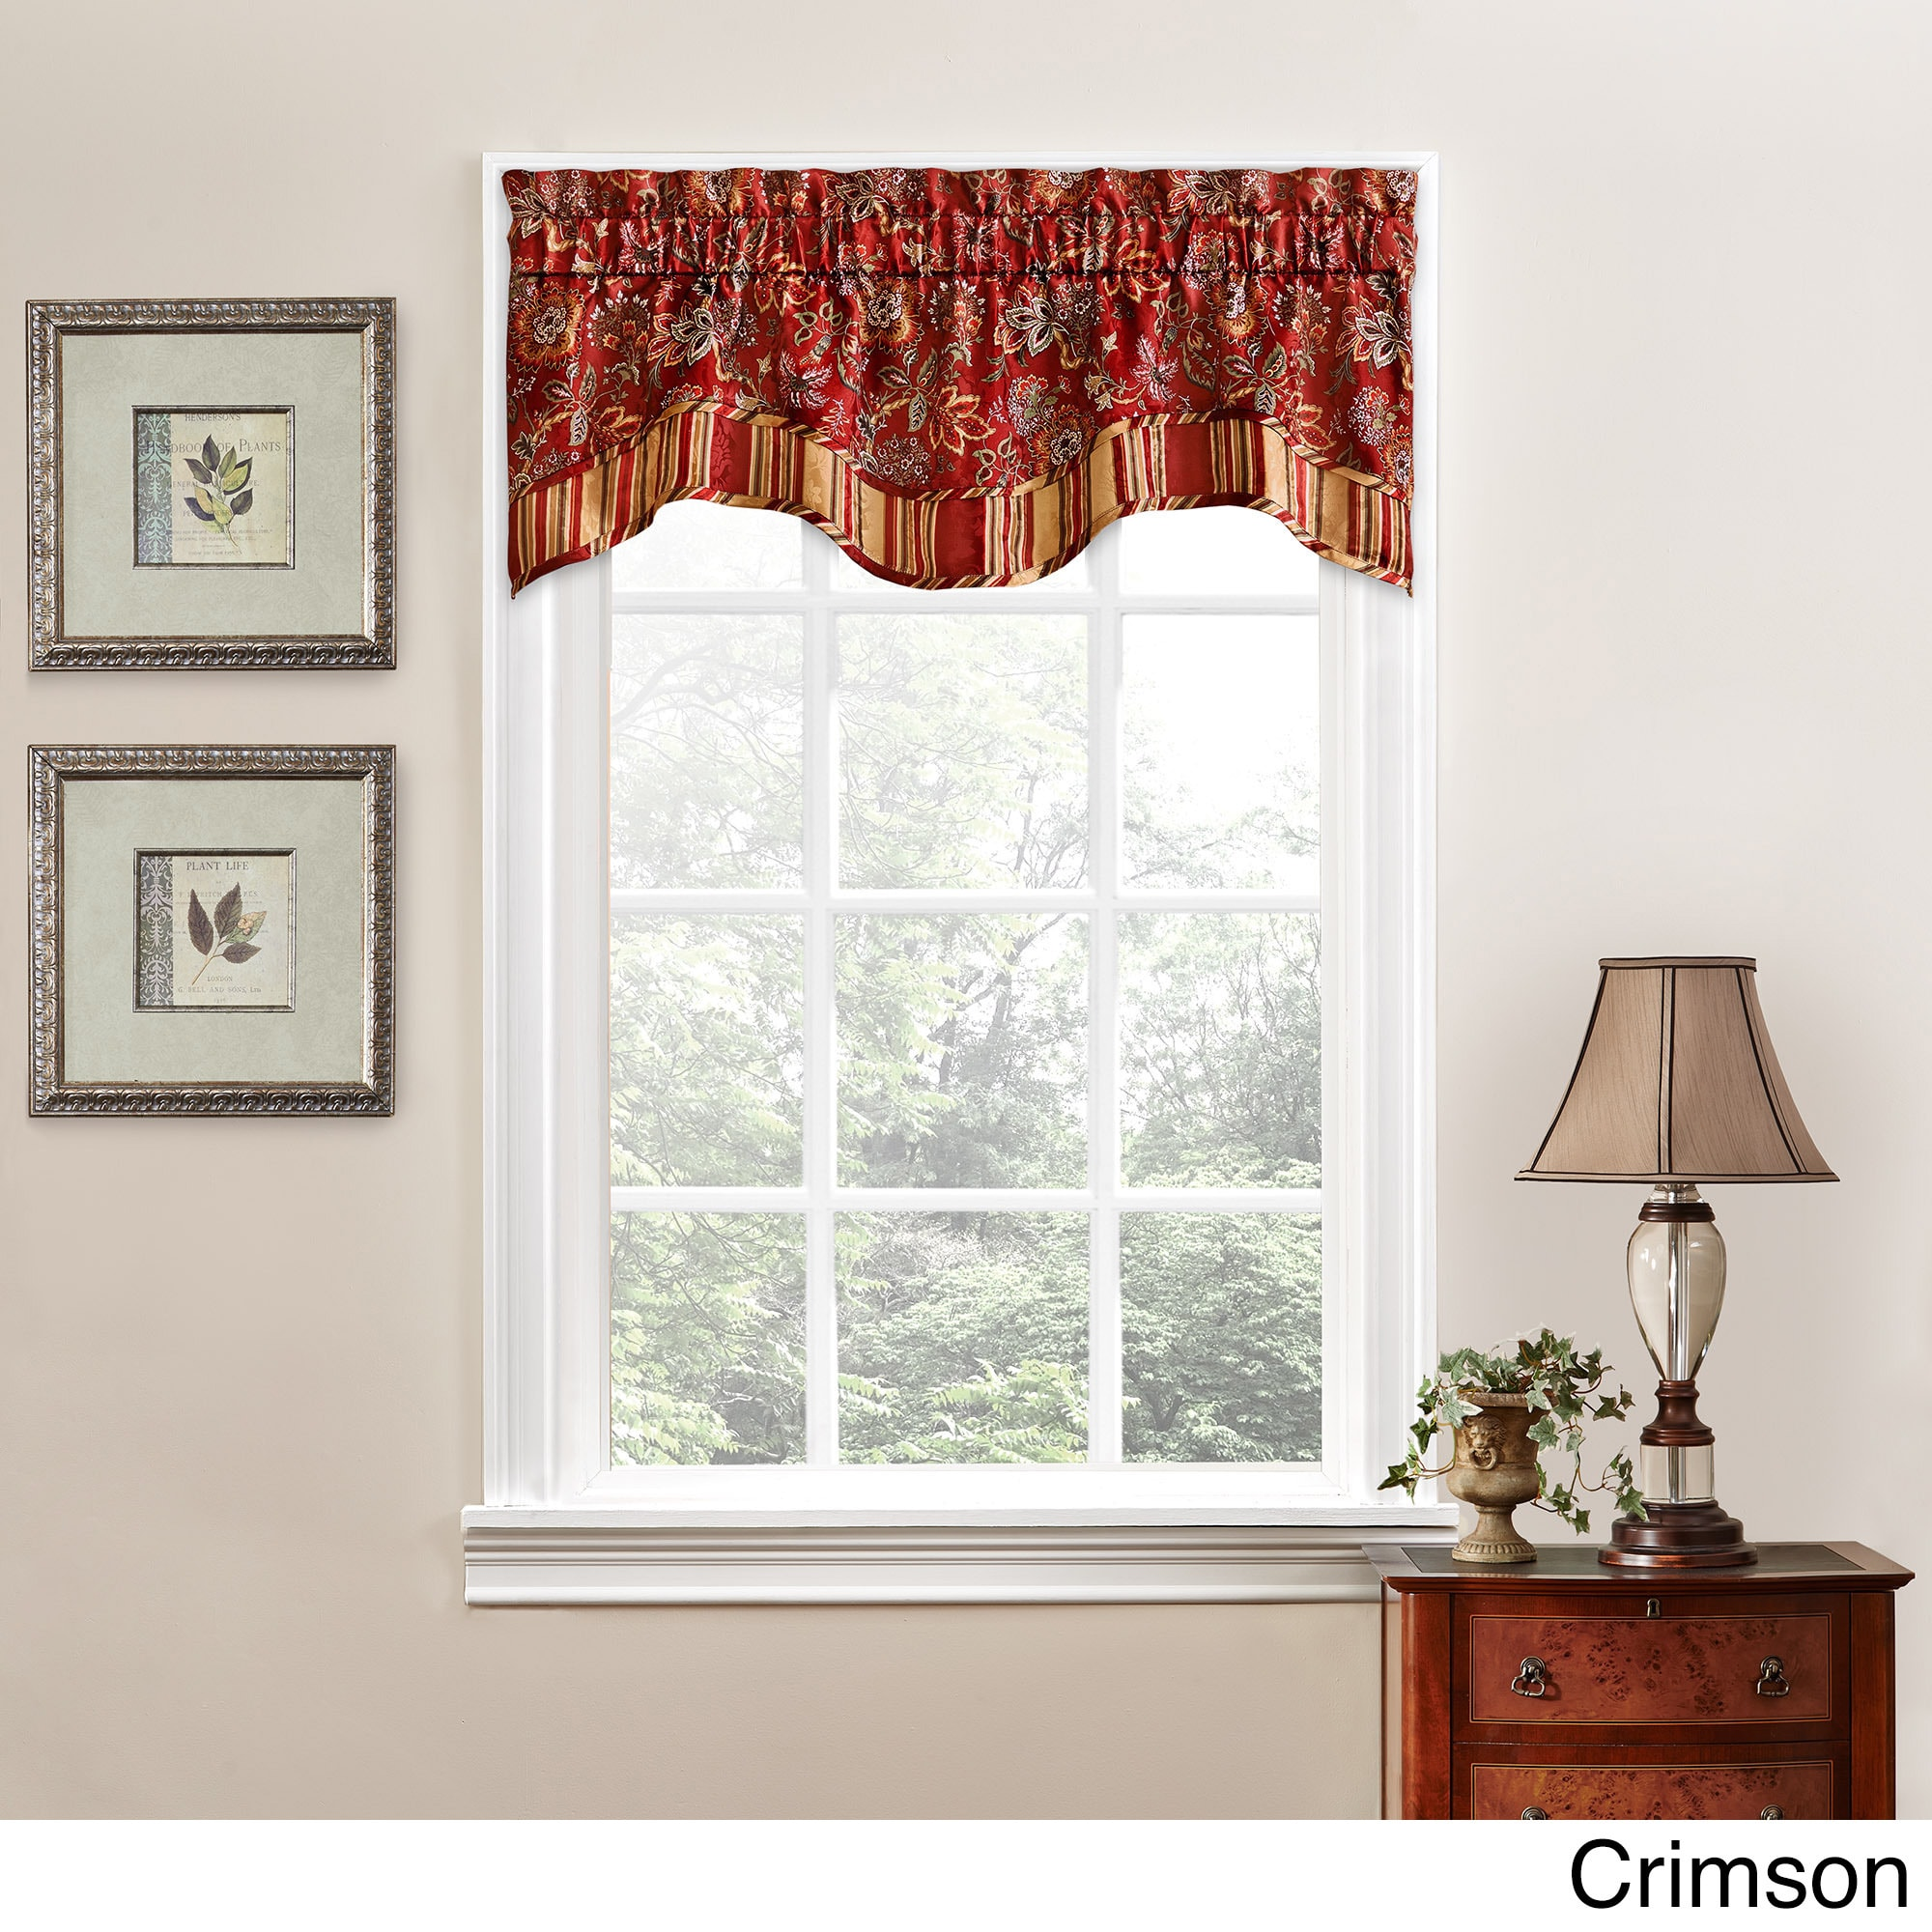 Traditions by Waverly Navarra Floral Window Valance (Crim...